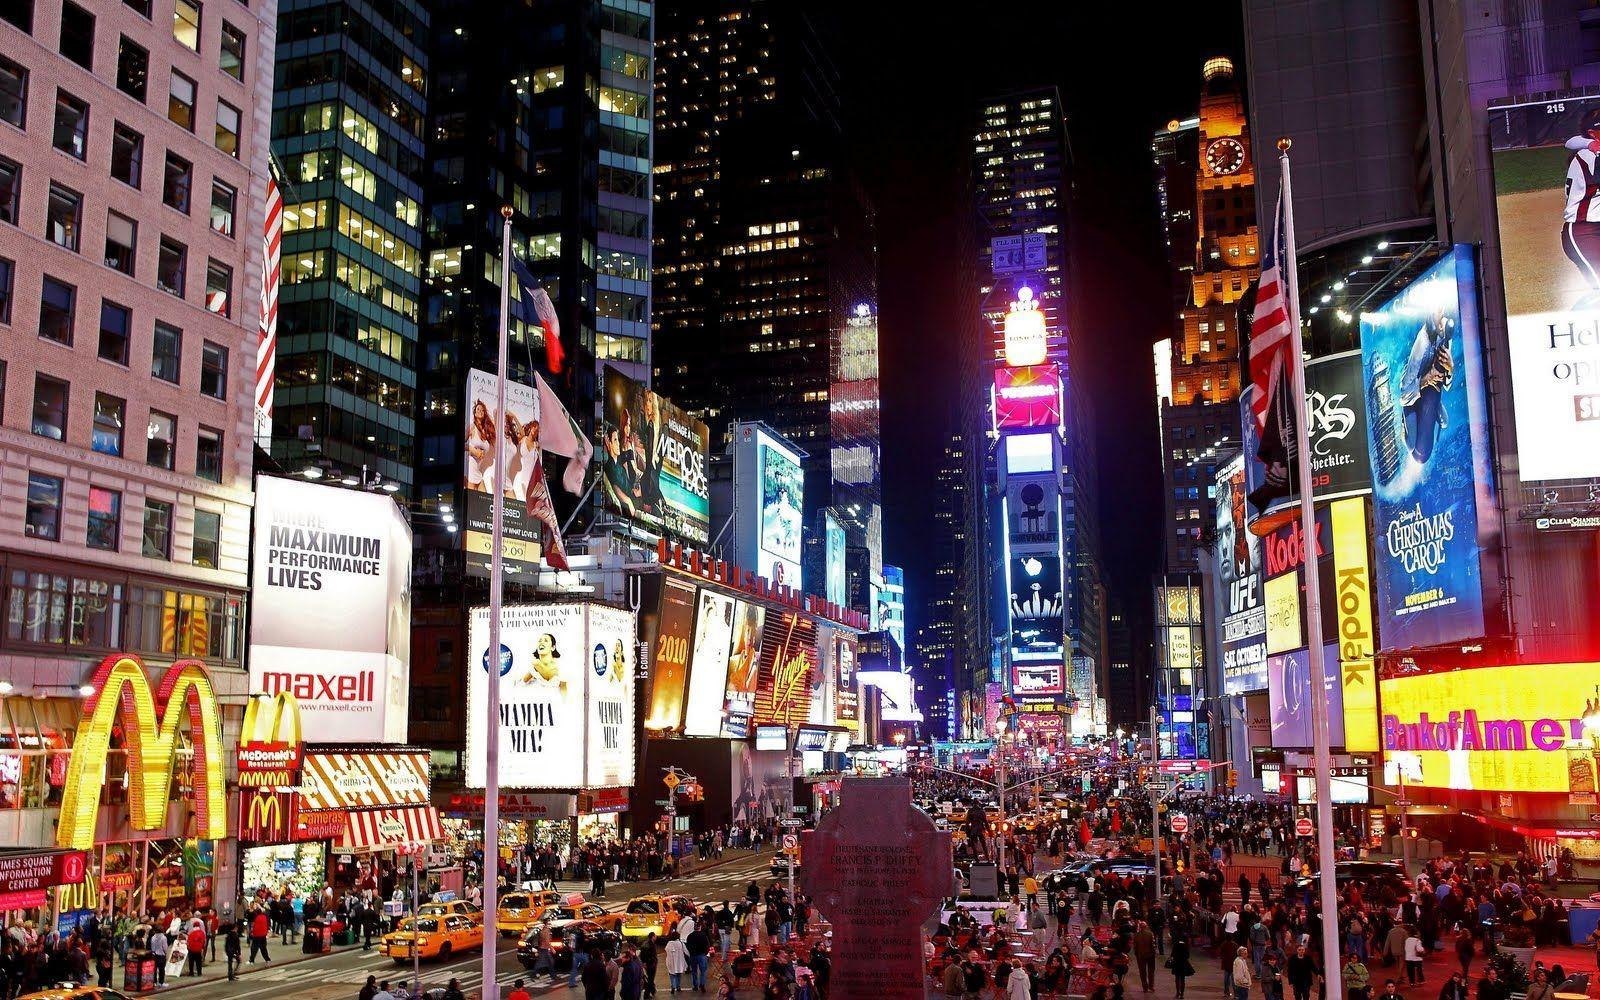 Times Square HD Wallpaper For PC #14399 Wallpaper | Risewall.